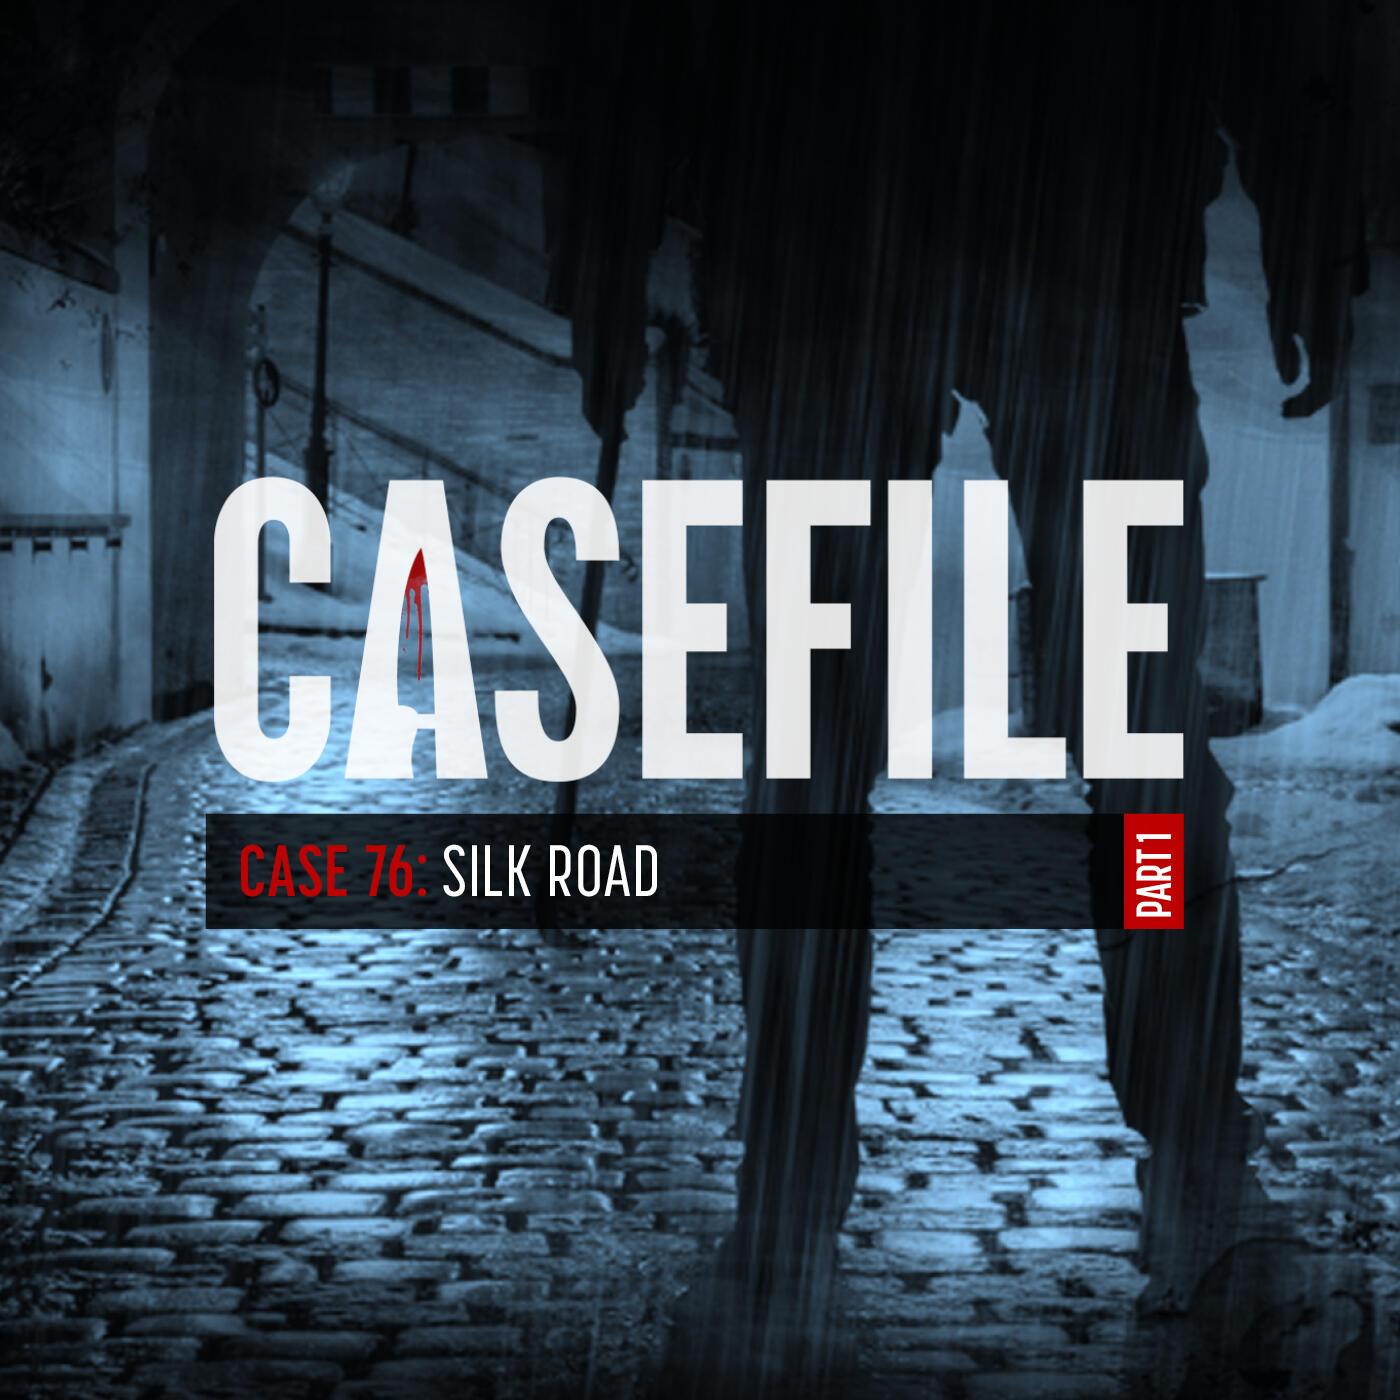 Case 76: Silk Road (Part 1)